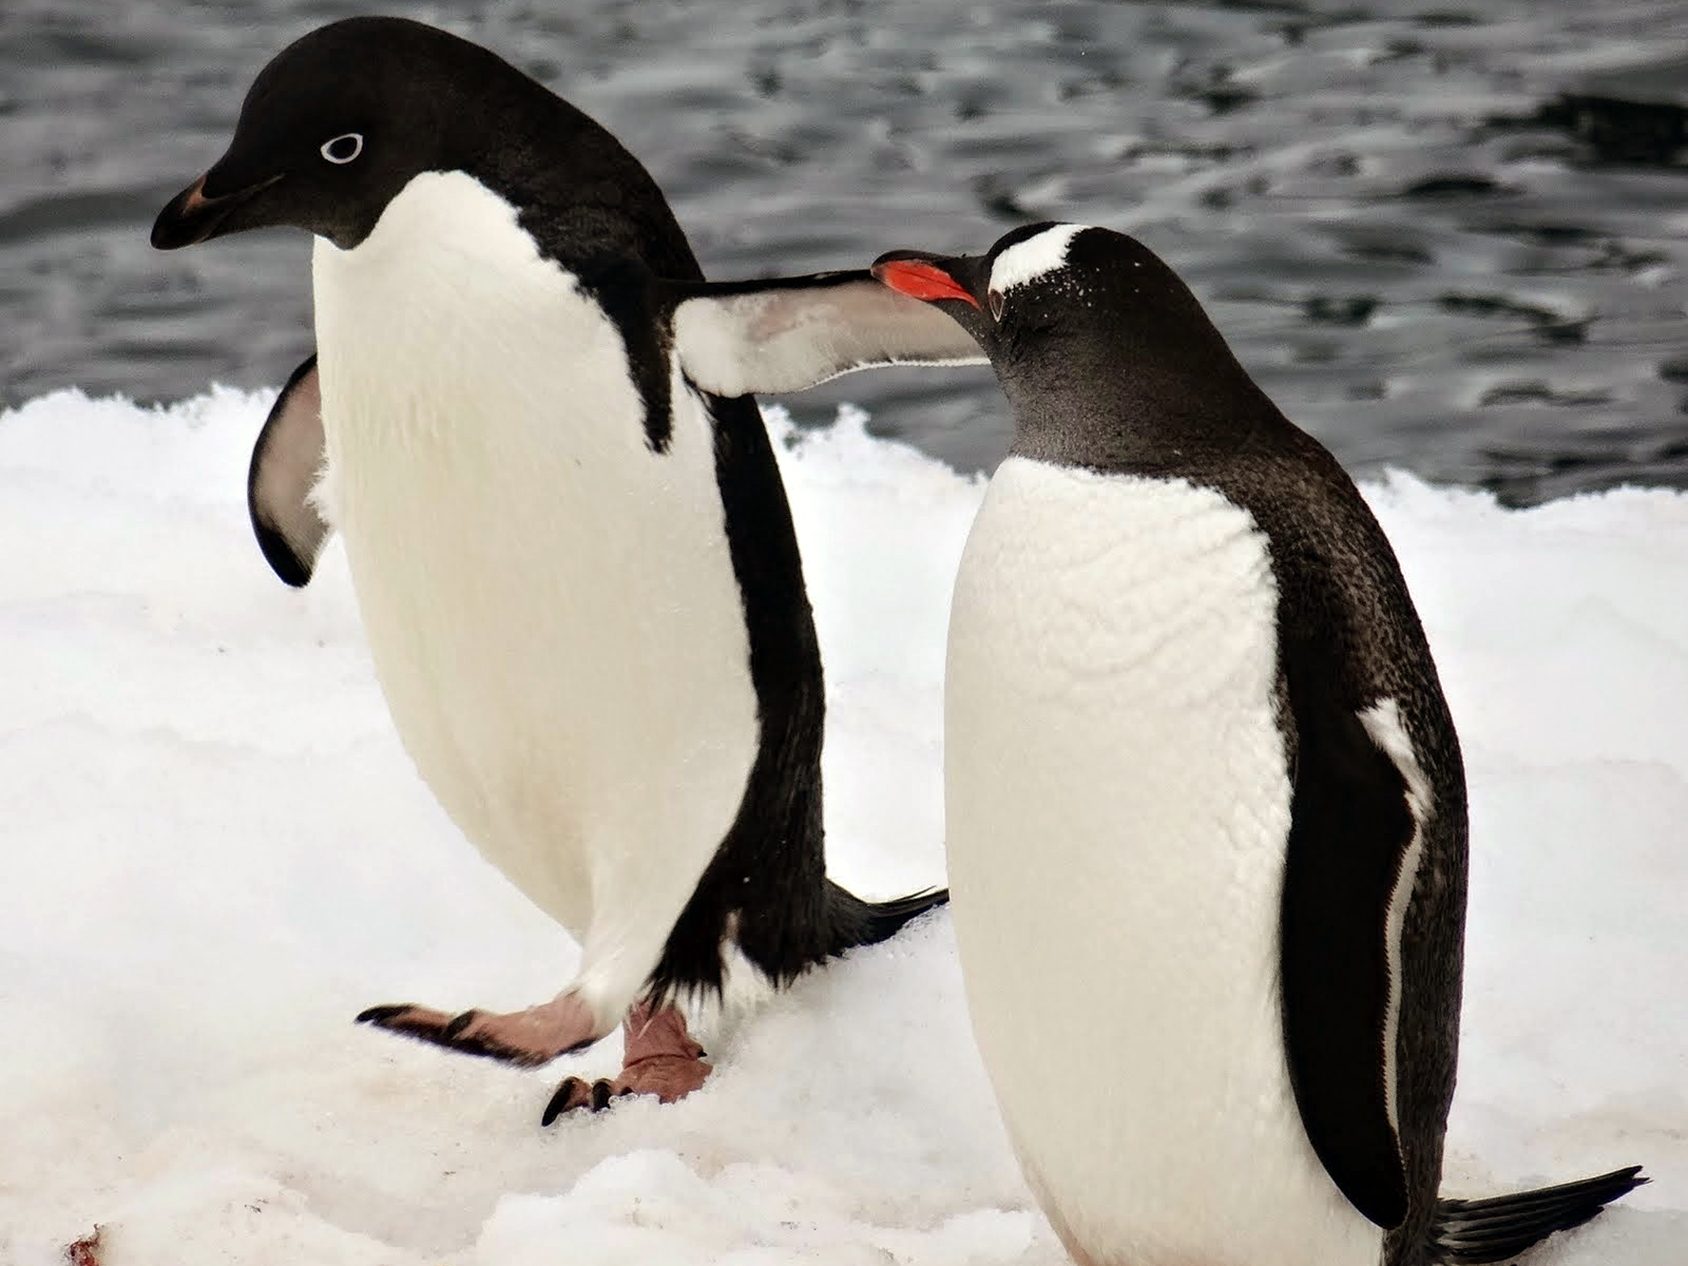 True to the species' social nature, we spotted this Adélie penguin chatting up a friendly gentoo penguin at the northern entrance of the Lemaire Channel.